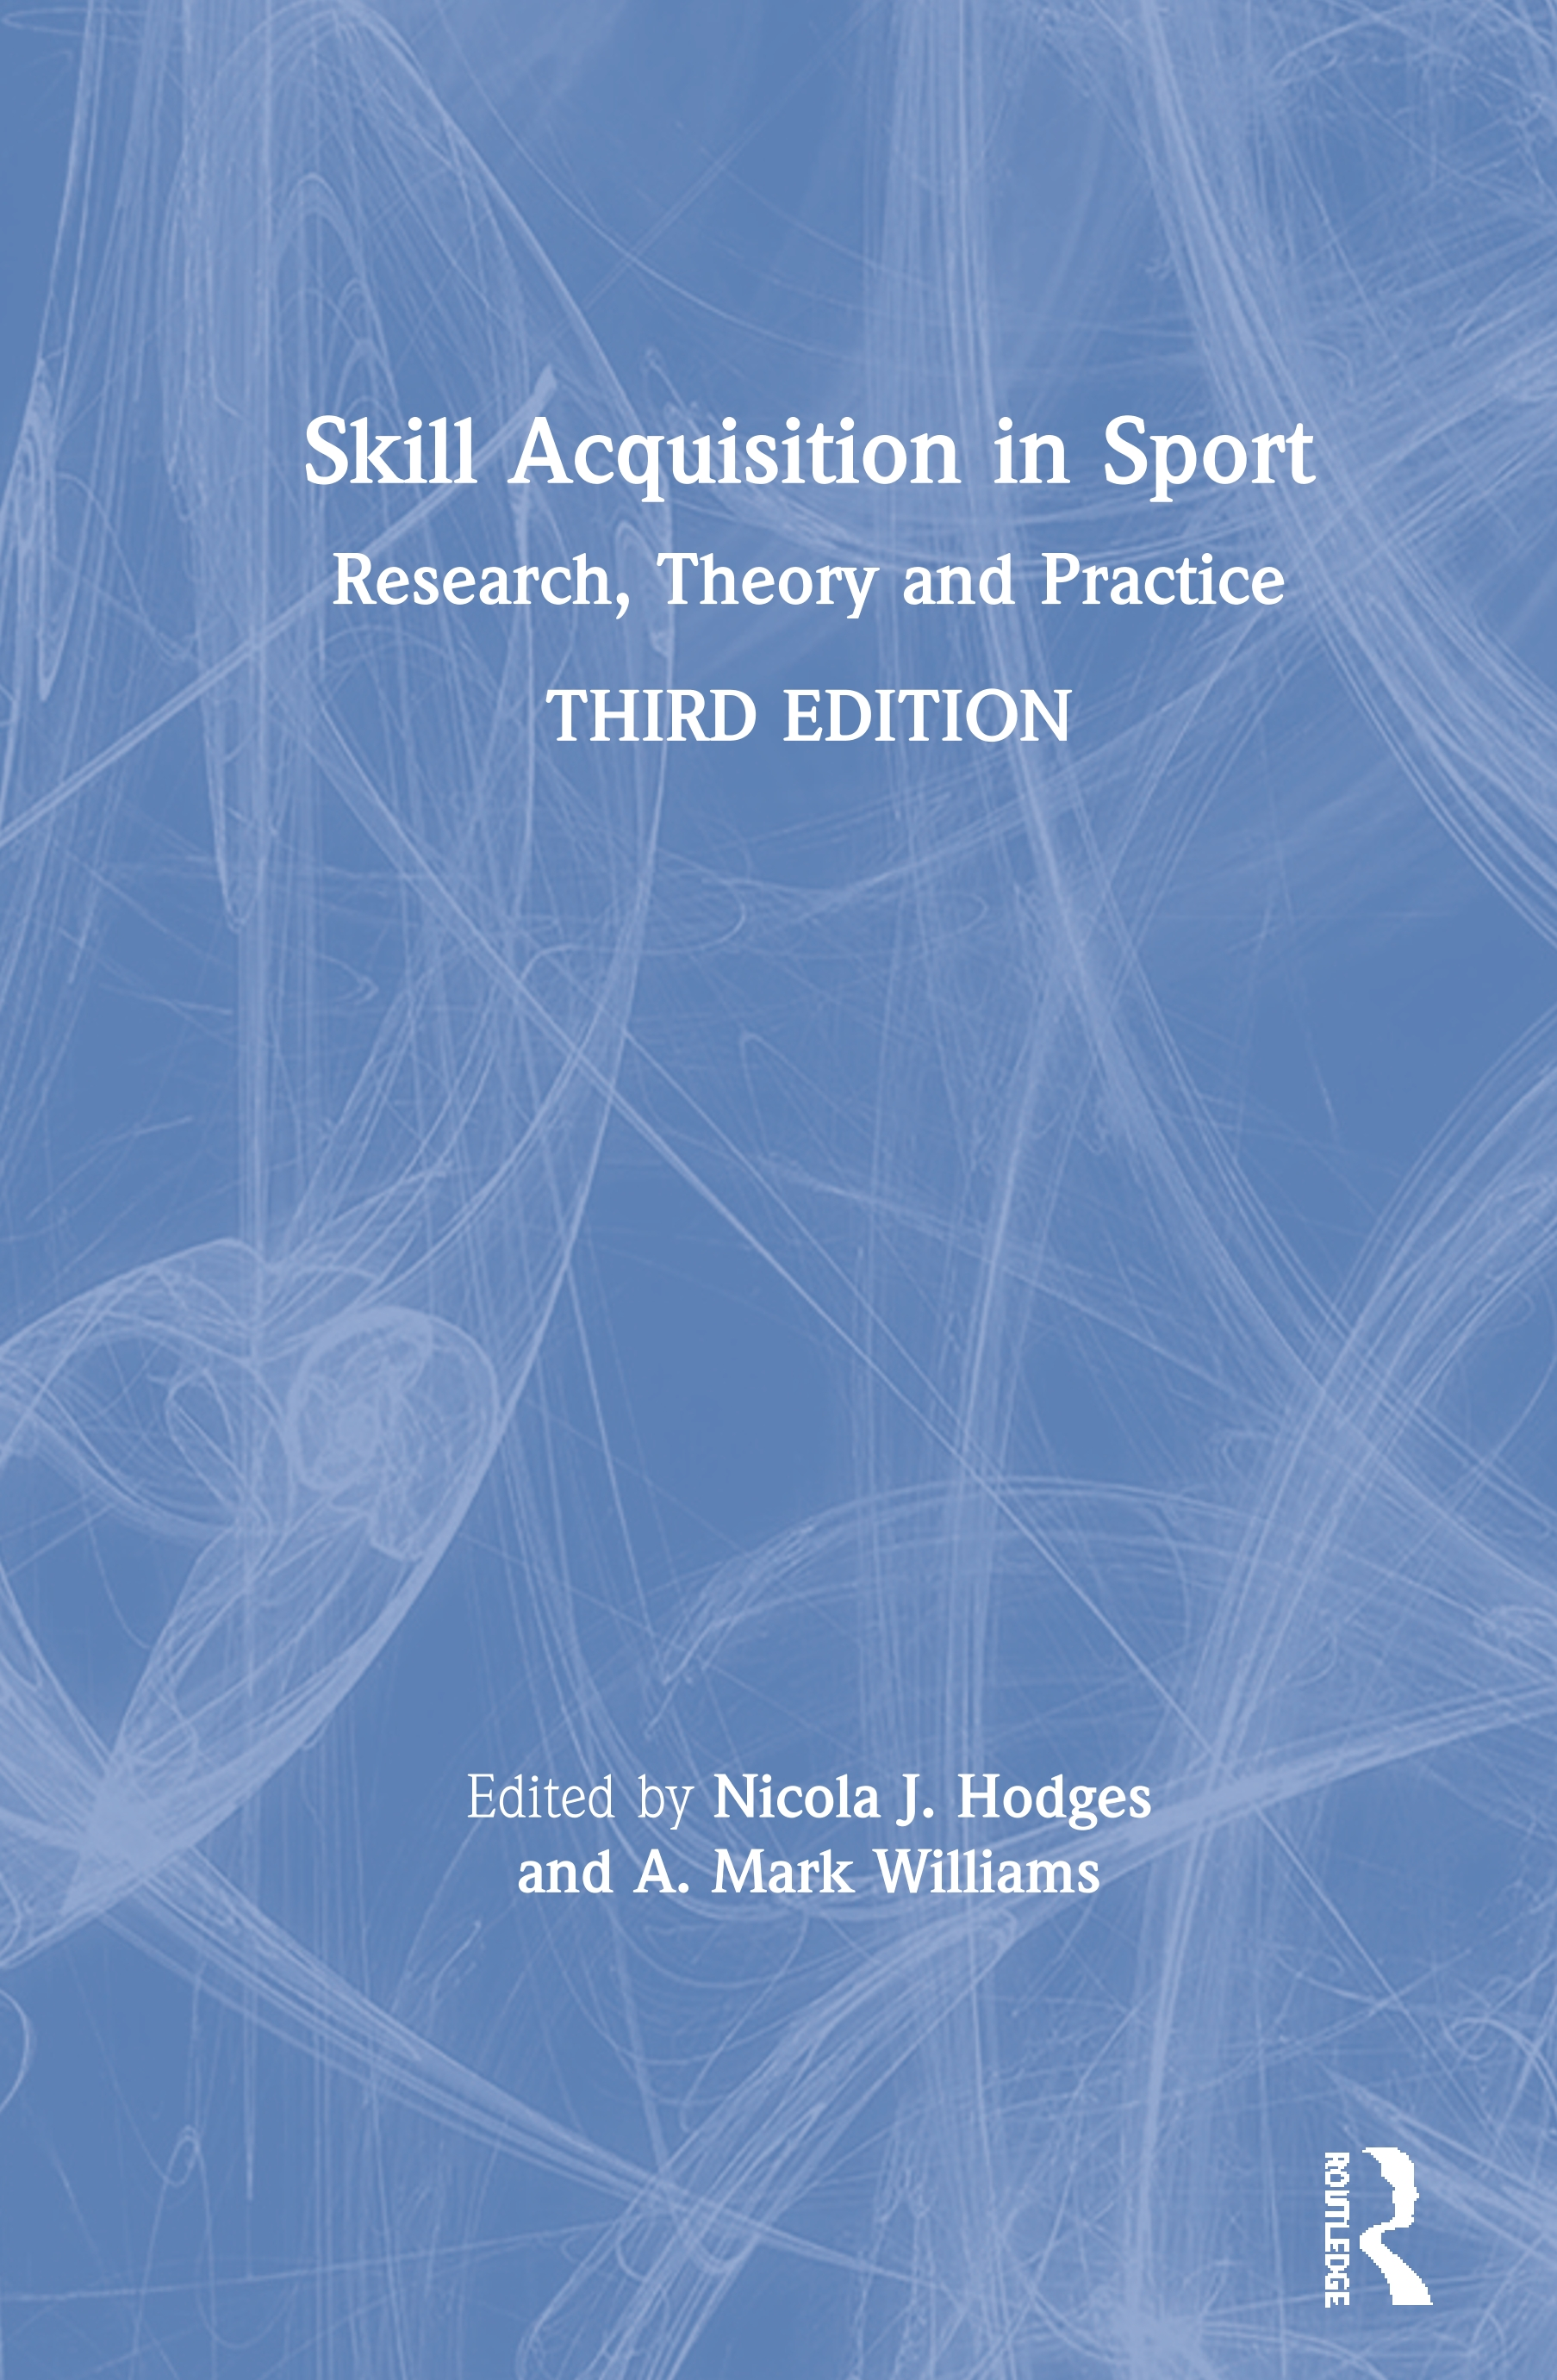 Sports training technologies